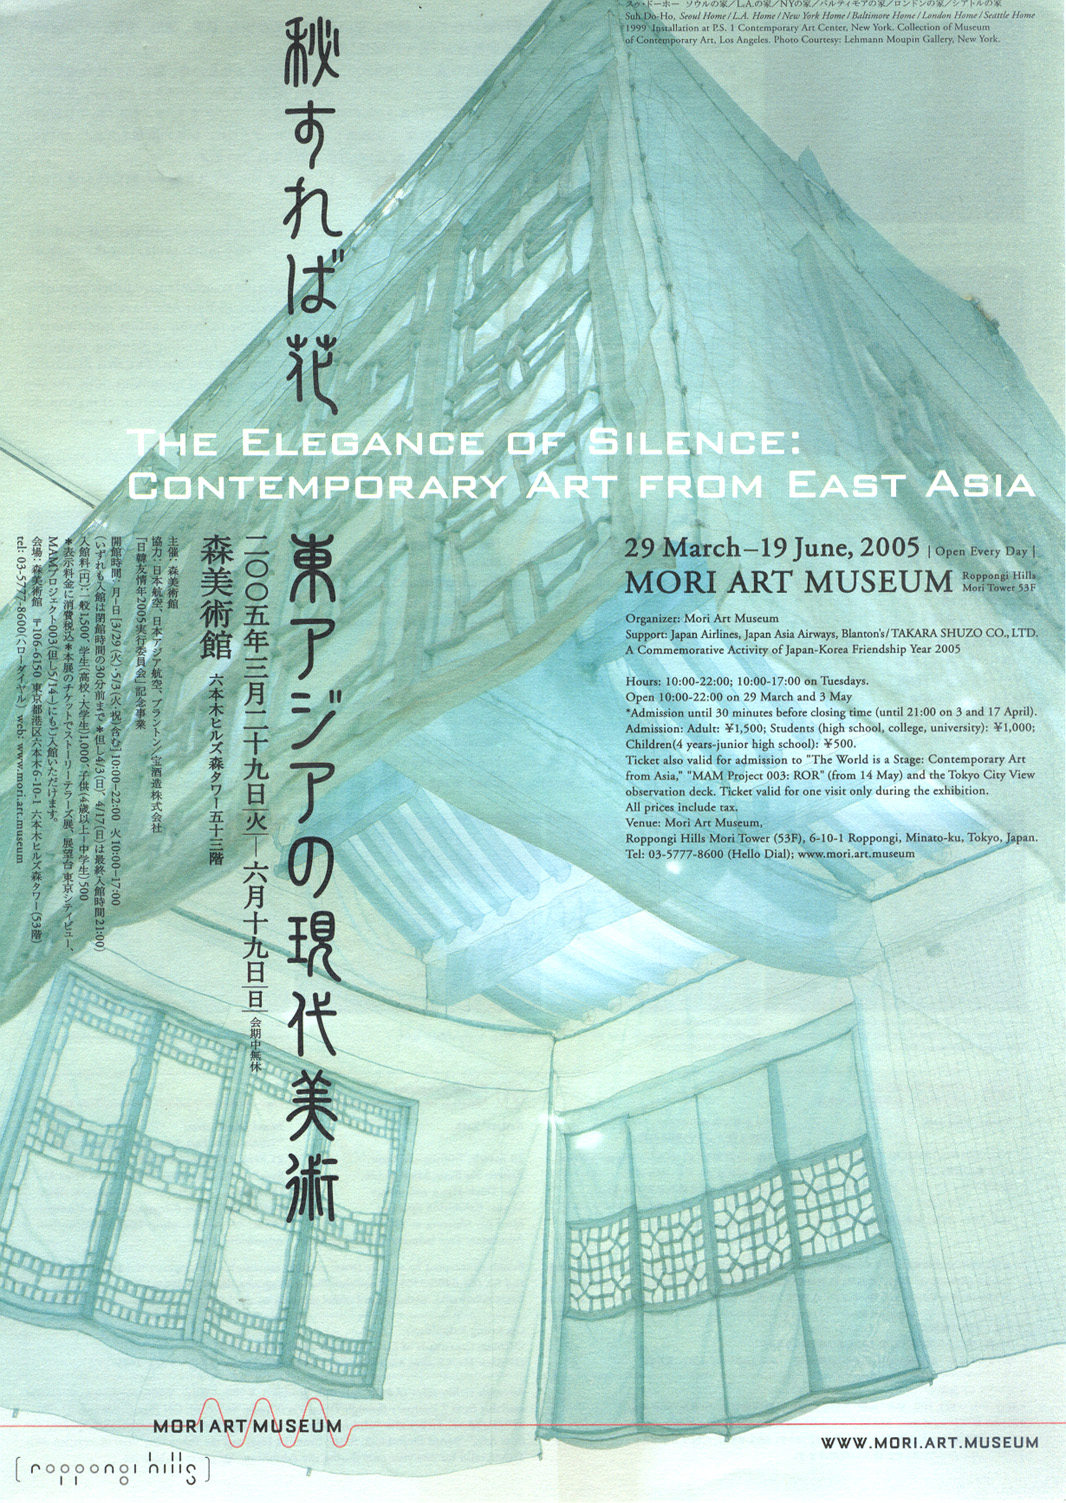 The Elegance of Silence: Contemporary Art From East Asia